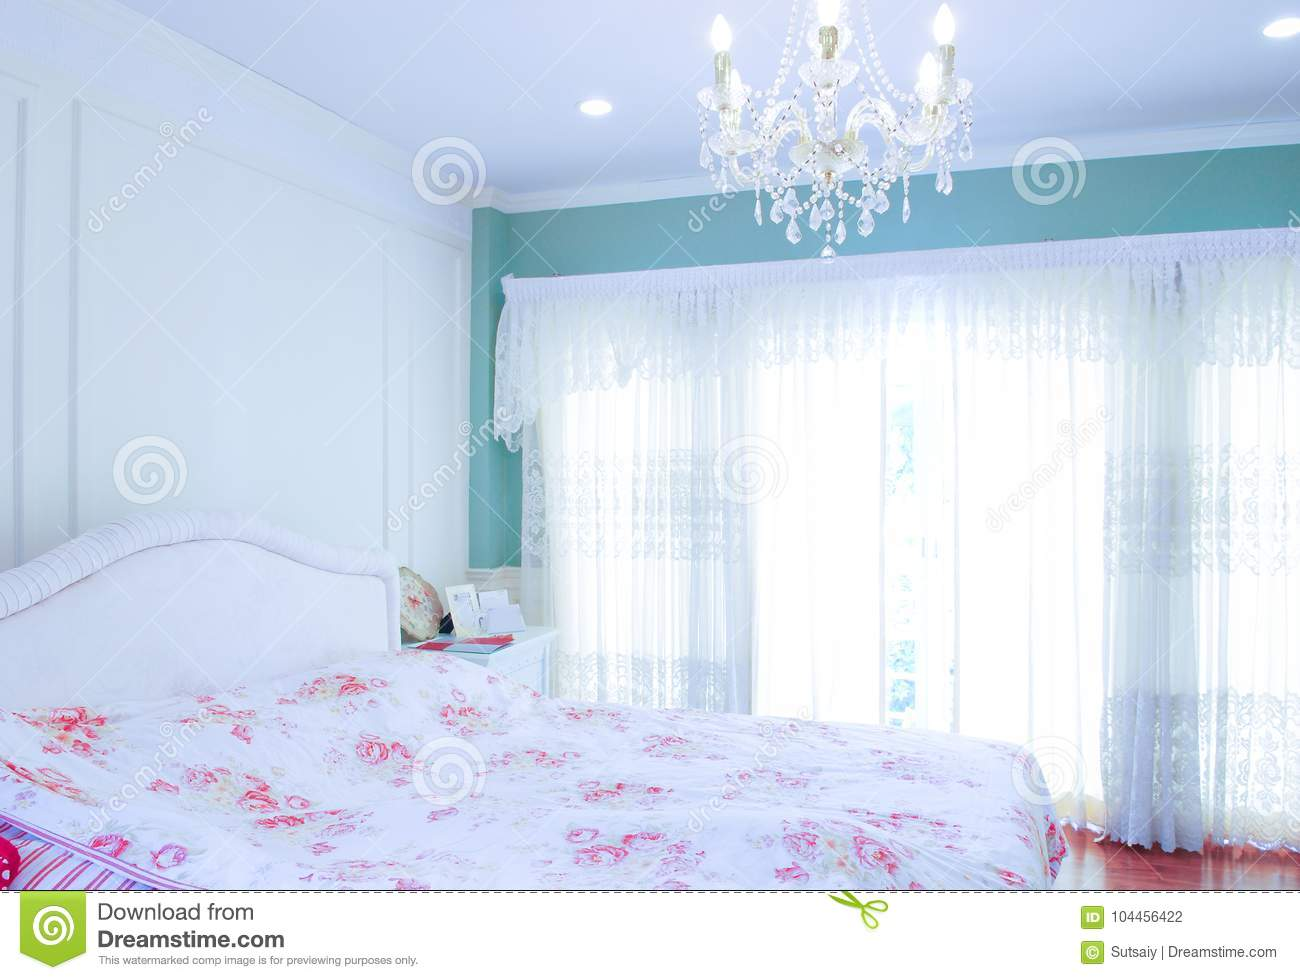 Download Bedroom With Flower Decoration And Chandelier Stock Photo   Image  Of Home, Relax: